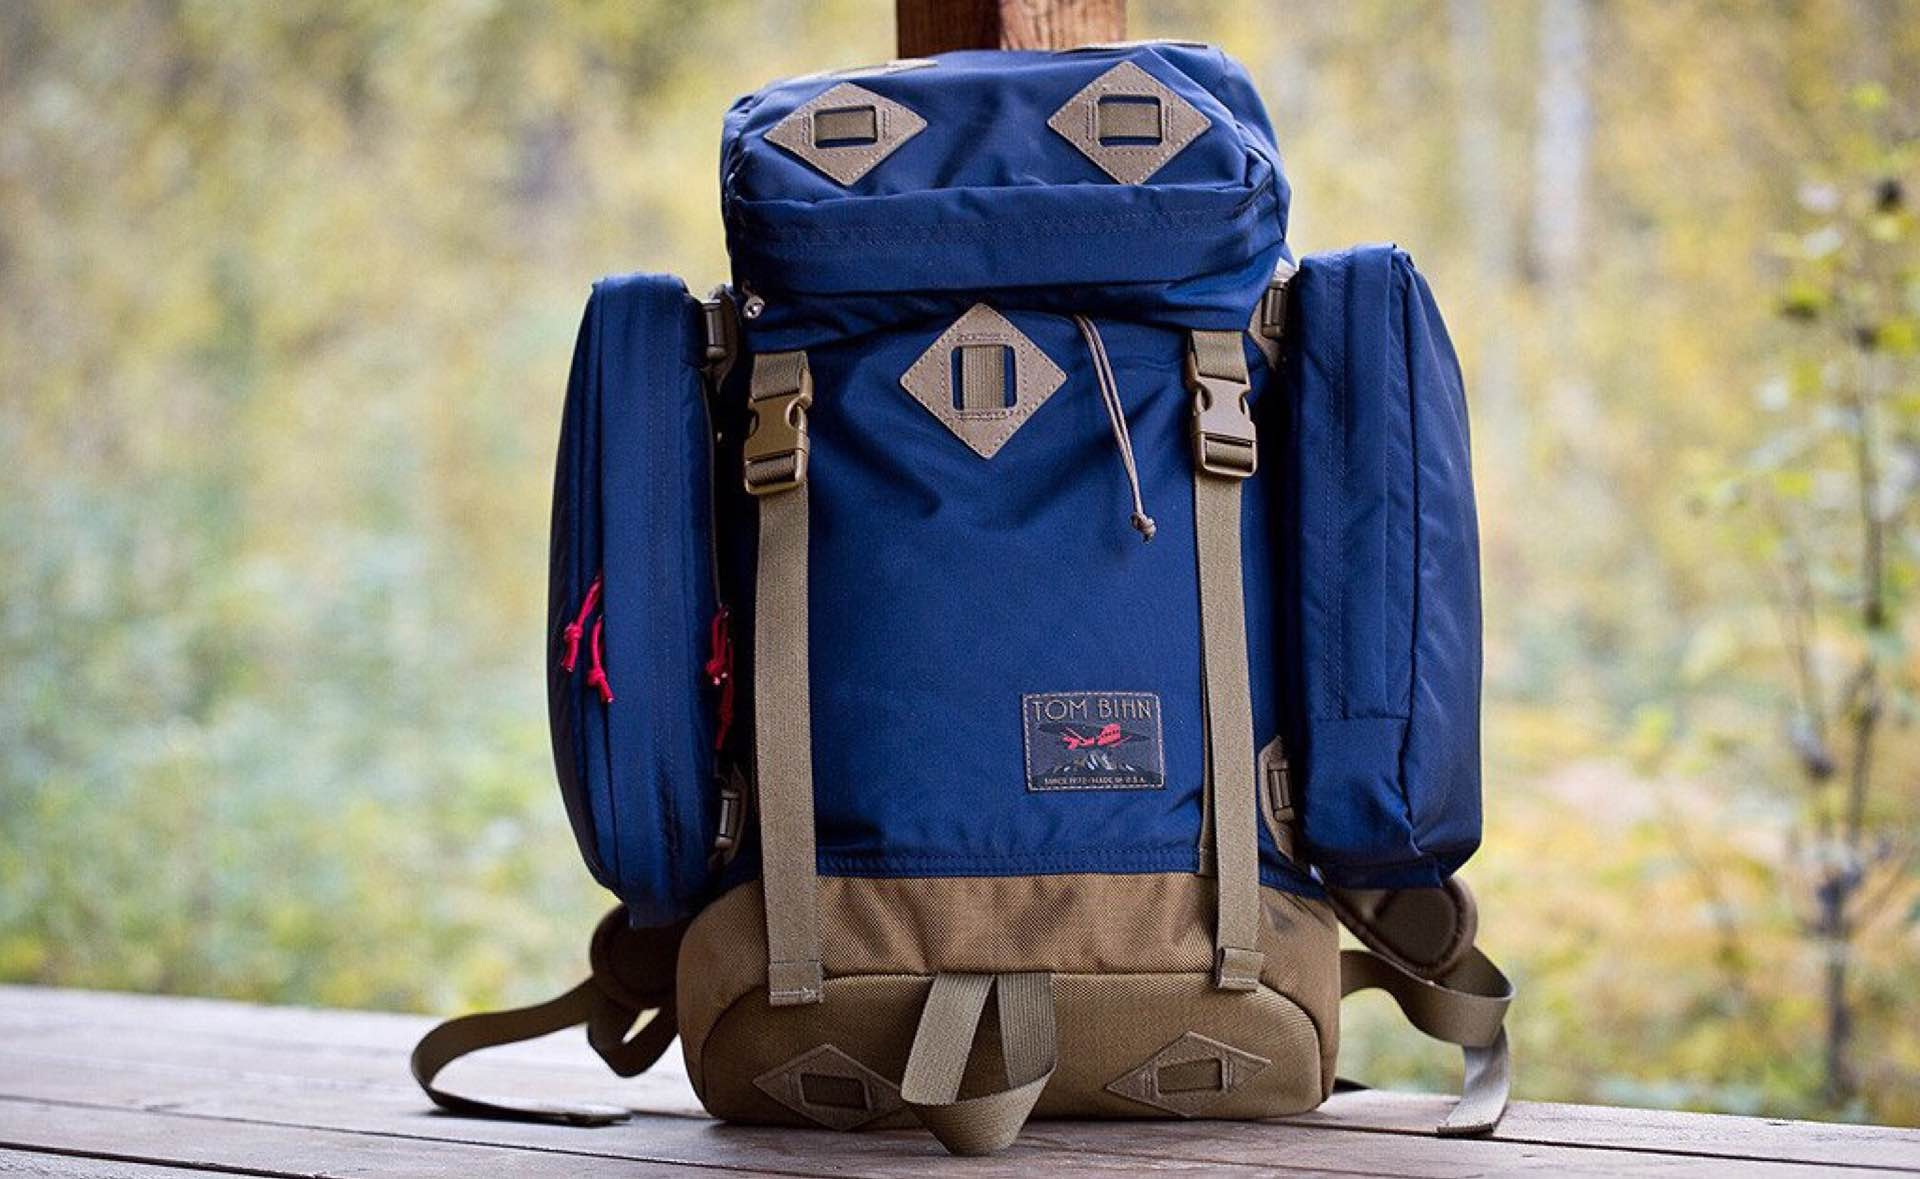 the-guides-pack-by-tom-bihn-2